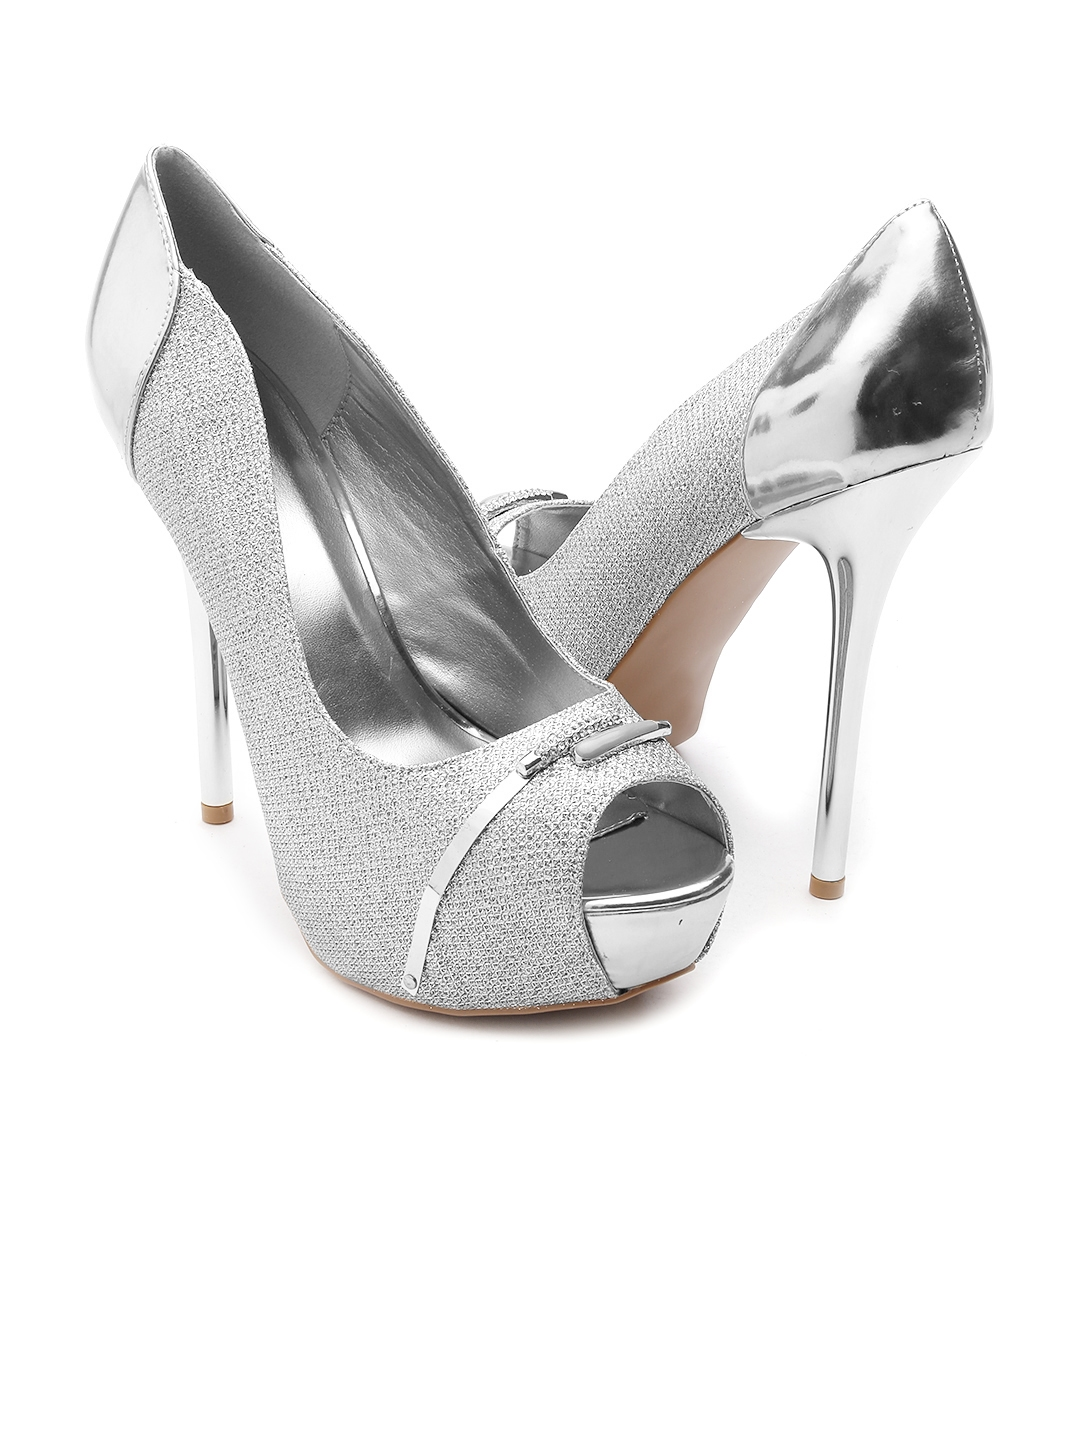 f4879b9353a Buy Qupid Women Silver Toned Shimmer Platforms - Heels for Women ...